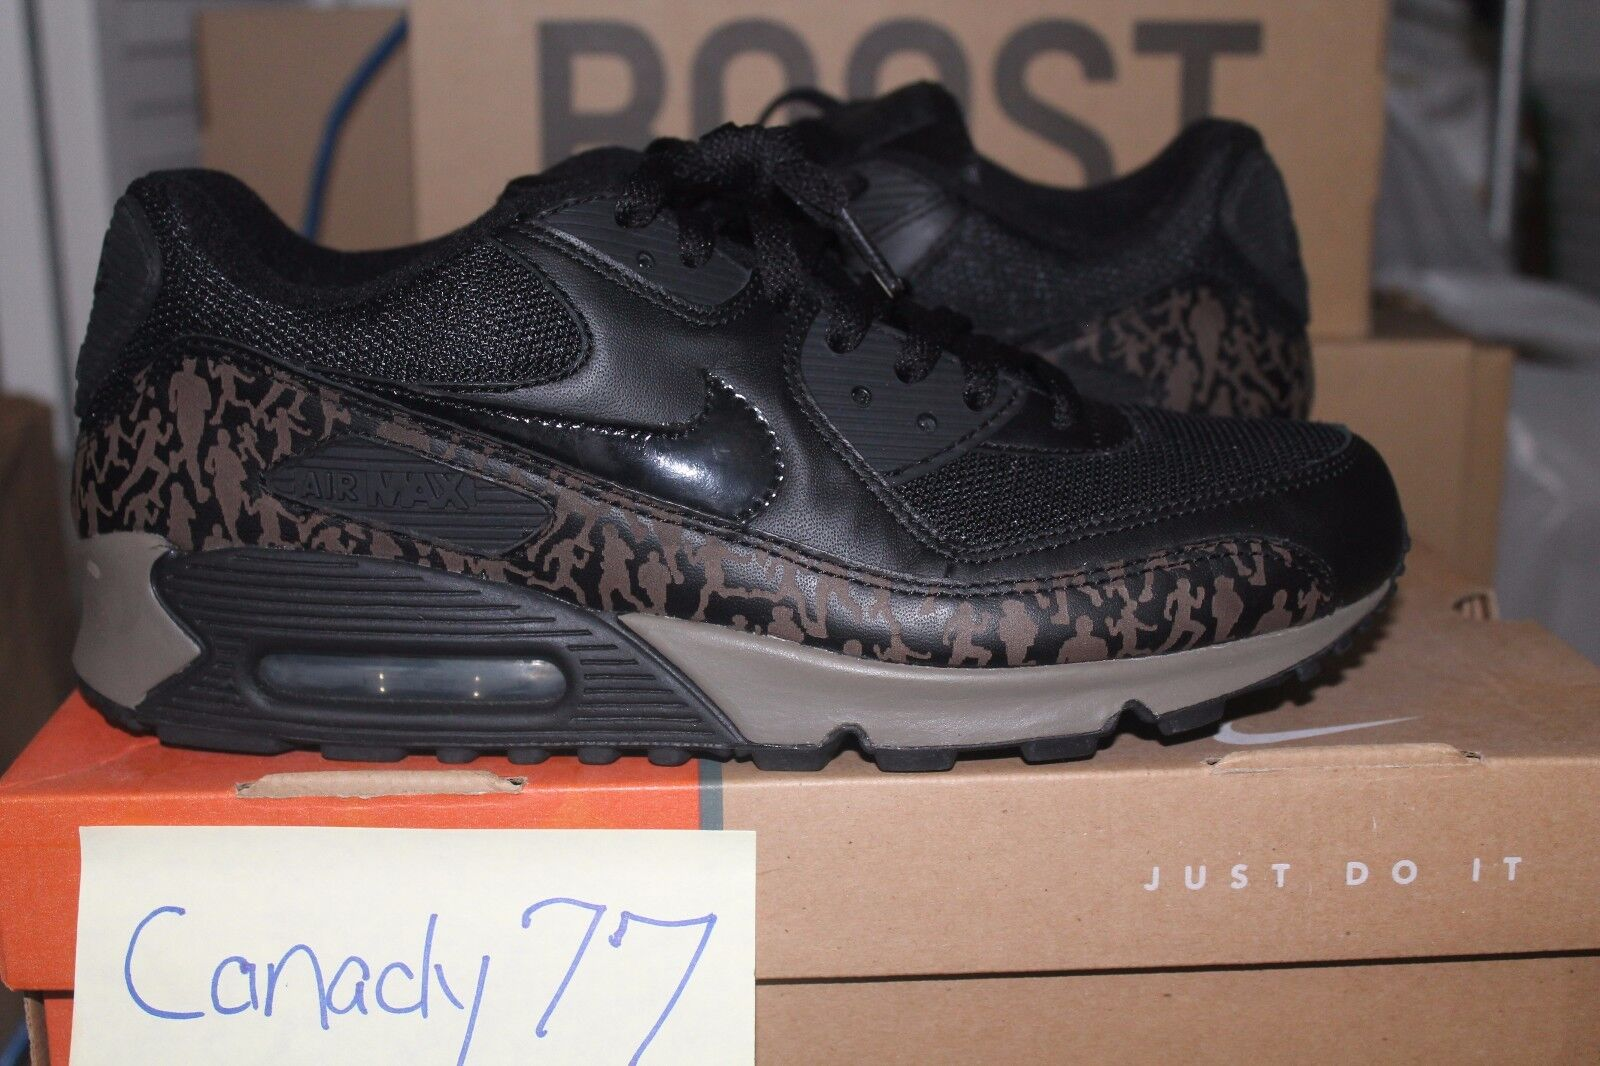 Nike Air Max 90 DS Olive Powerwall 8.5 rare patta atmos grape i ii iii iv v vi x